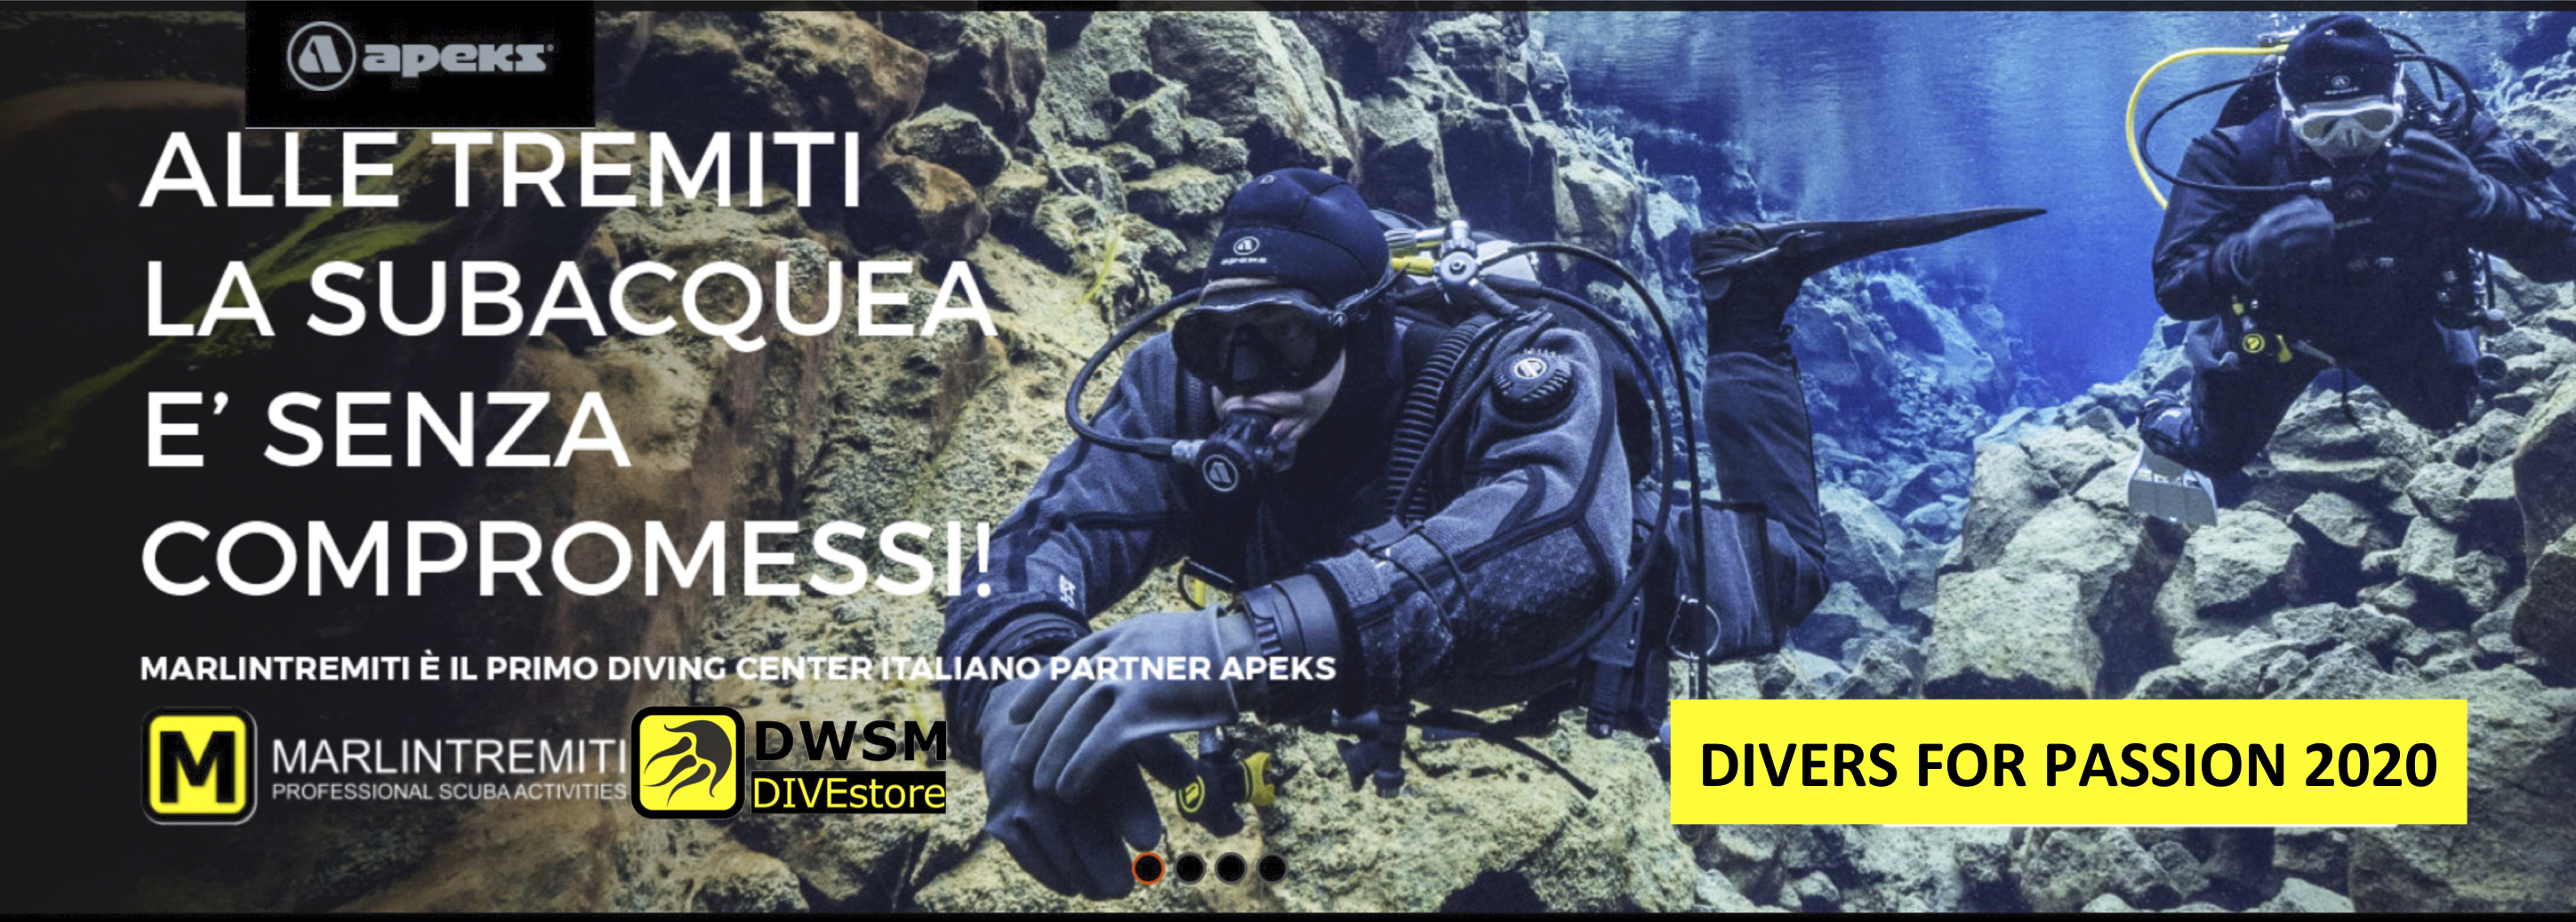 DIVERS FOR PASSION